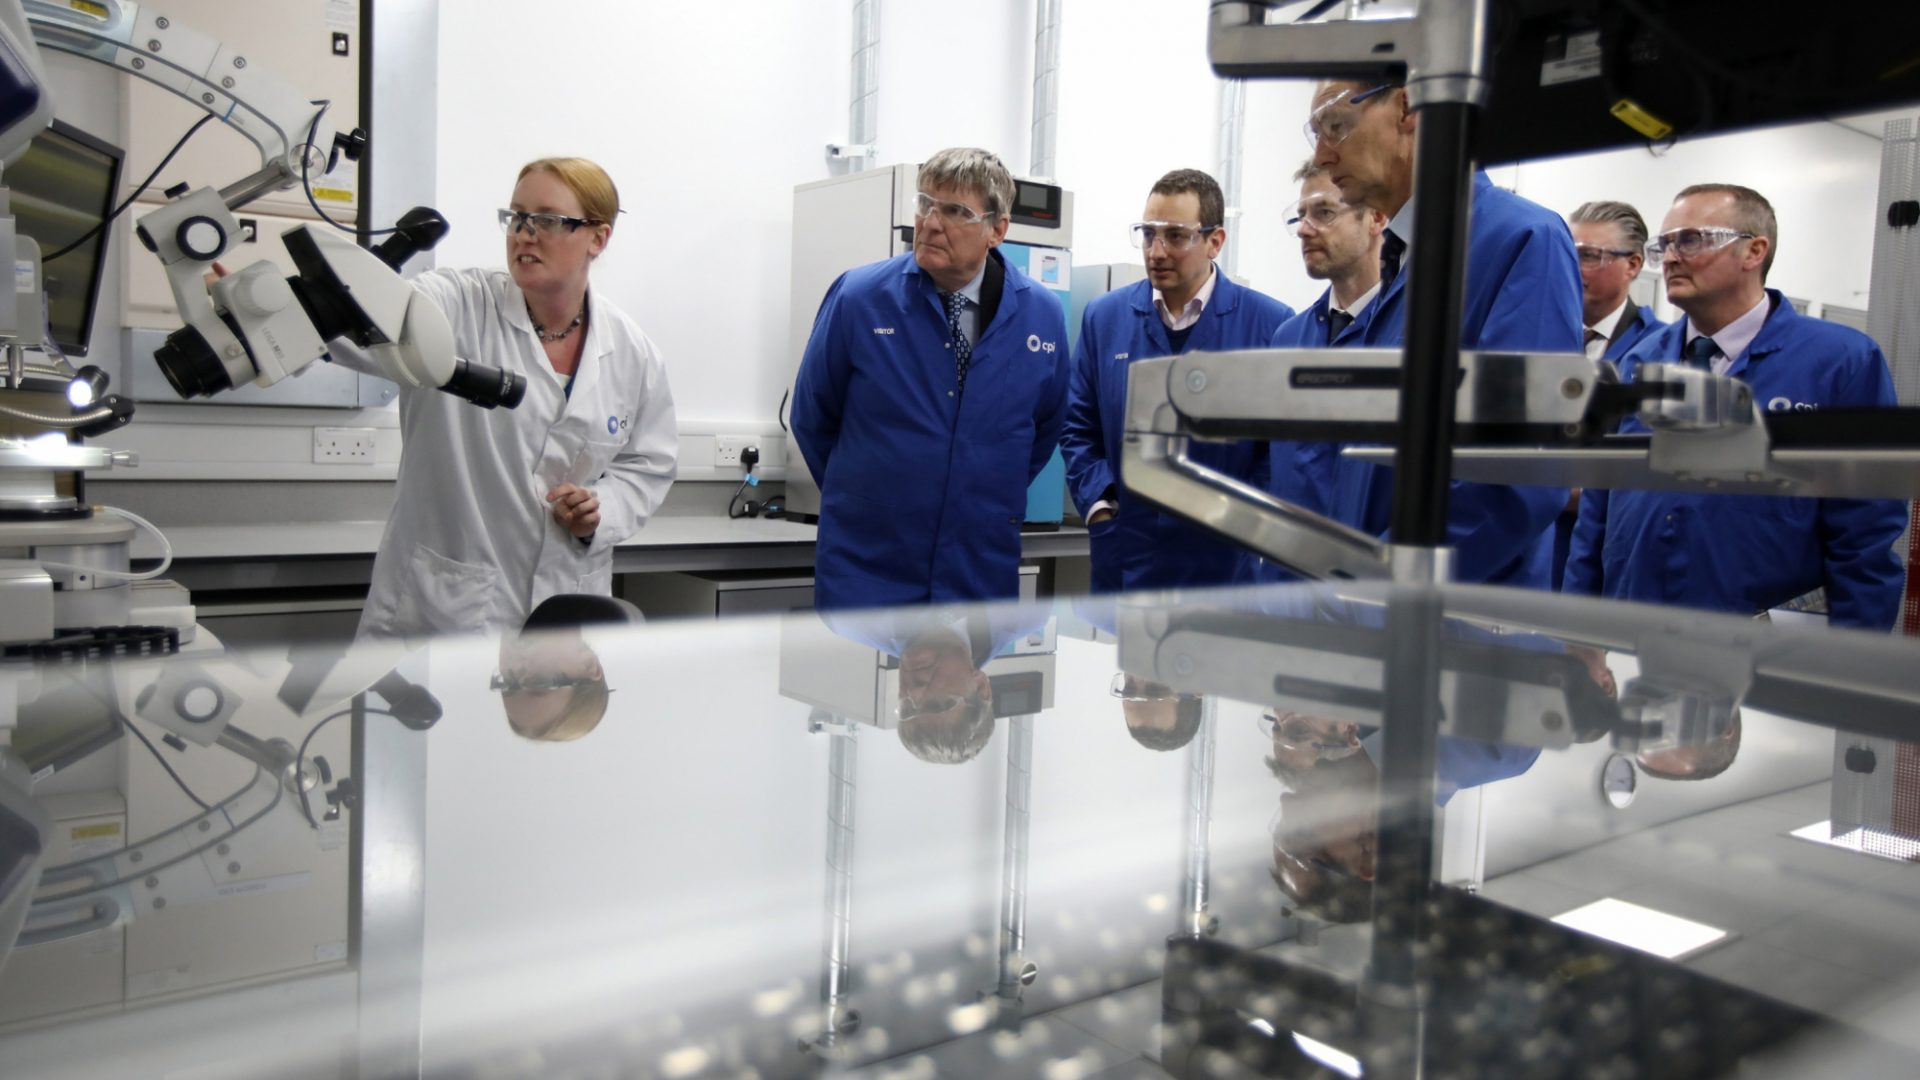 A photo of a CPI scientist giving showing visitors our high-throughput equipment capabilities in a laboratory.